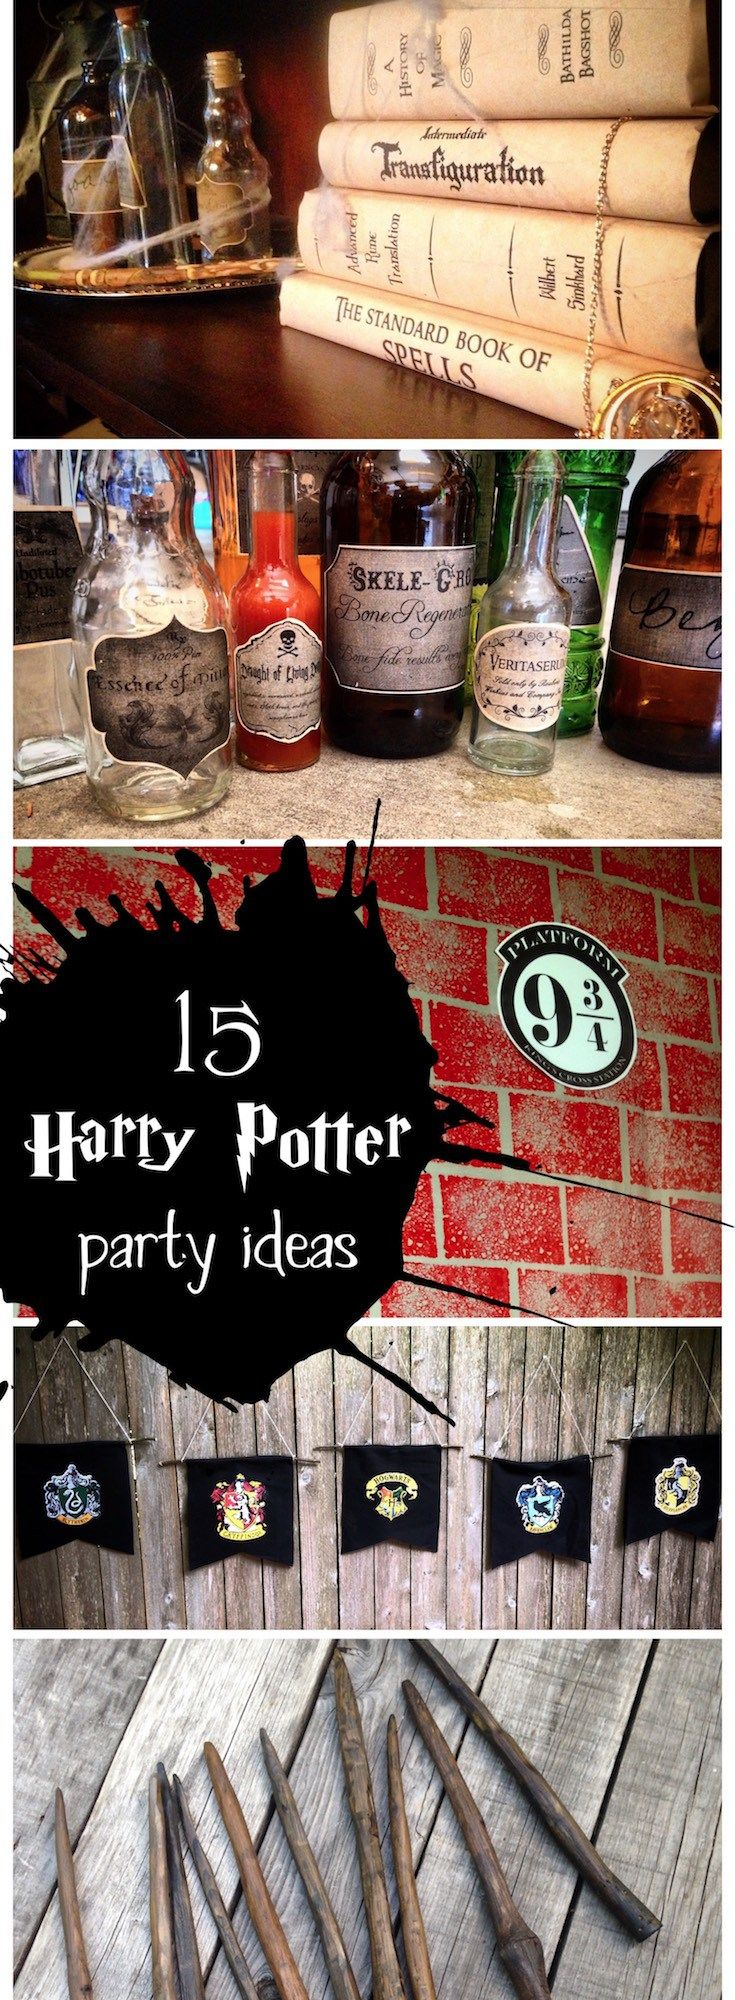 Harry Potter party ideas for easy decor. Throw an amazing Harry Potter